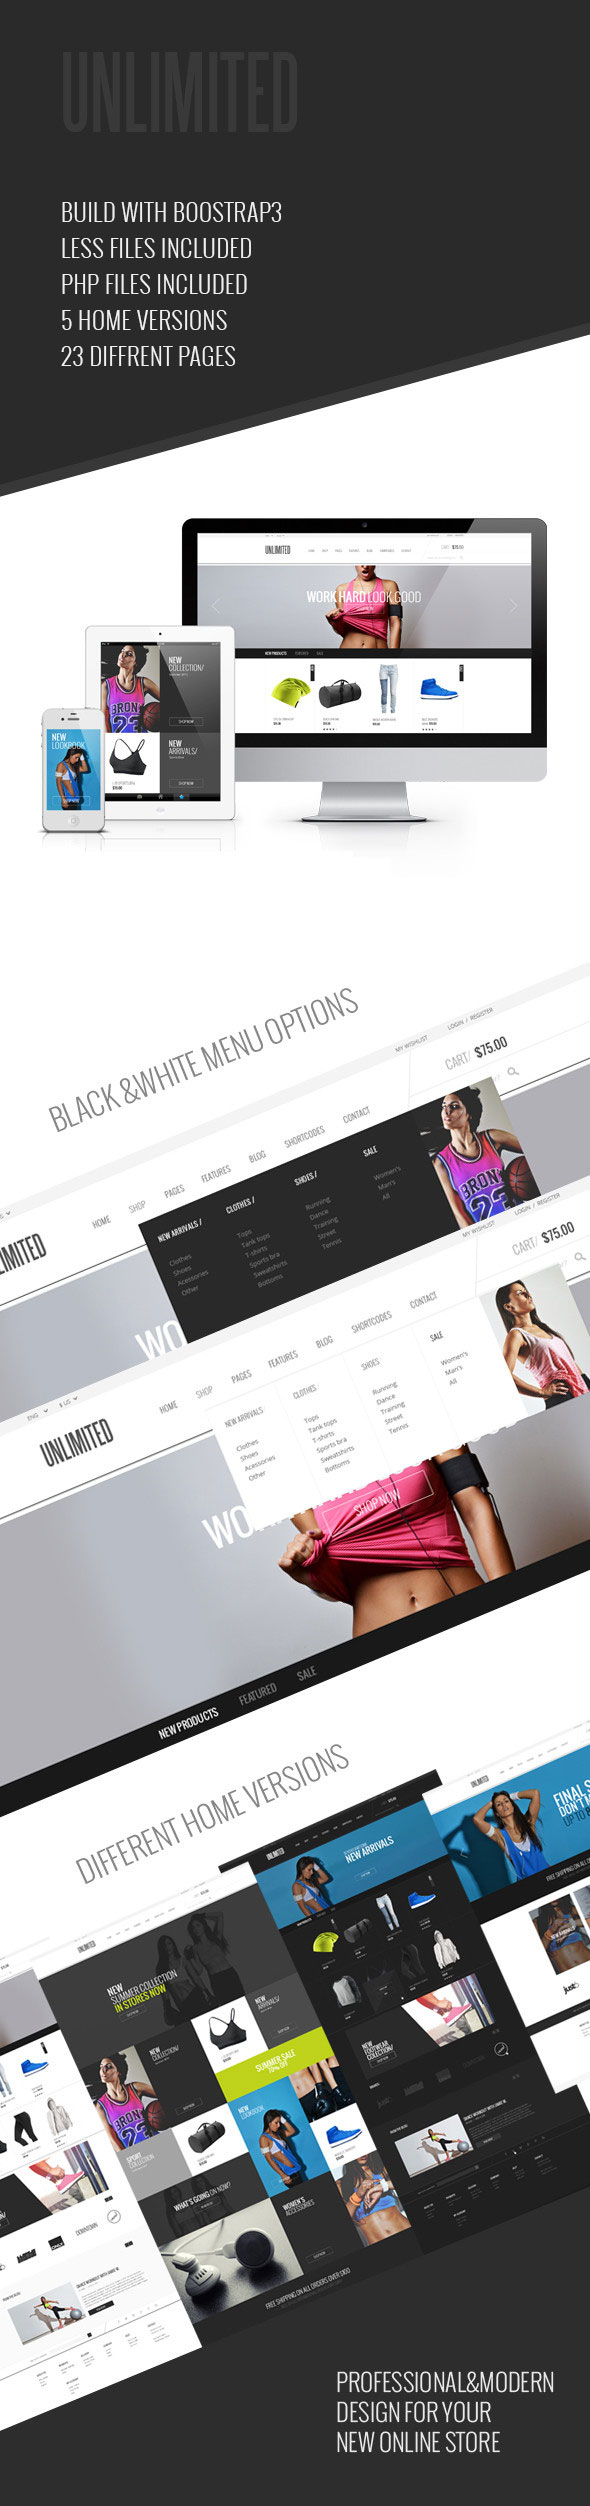 Unlimited - Sports Wear & Accessories Store Template - 1